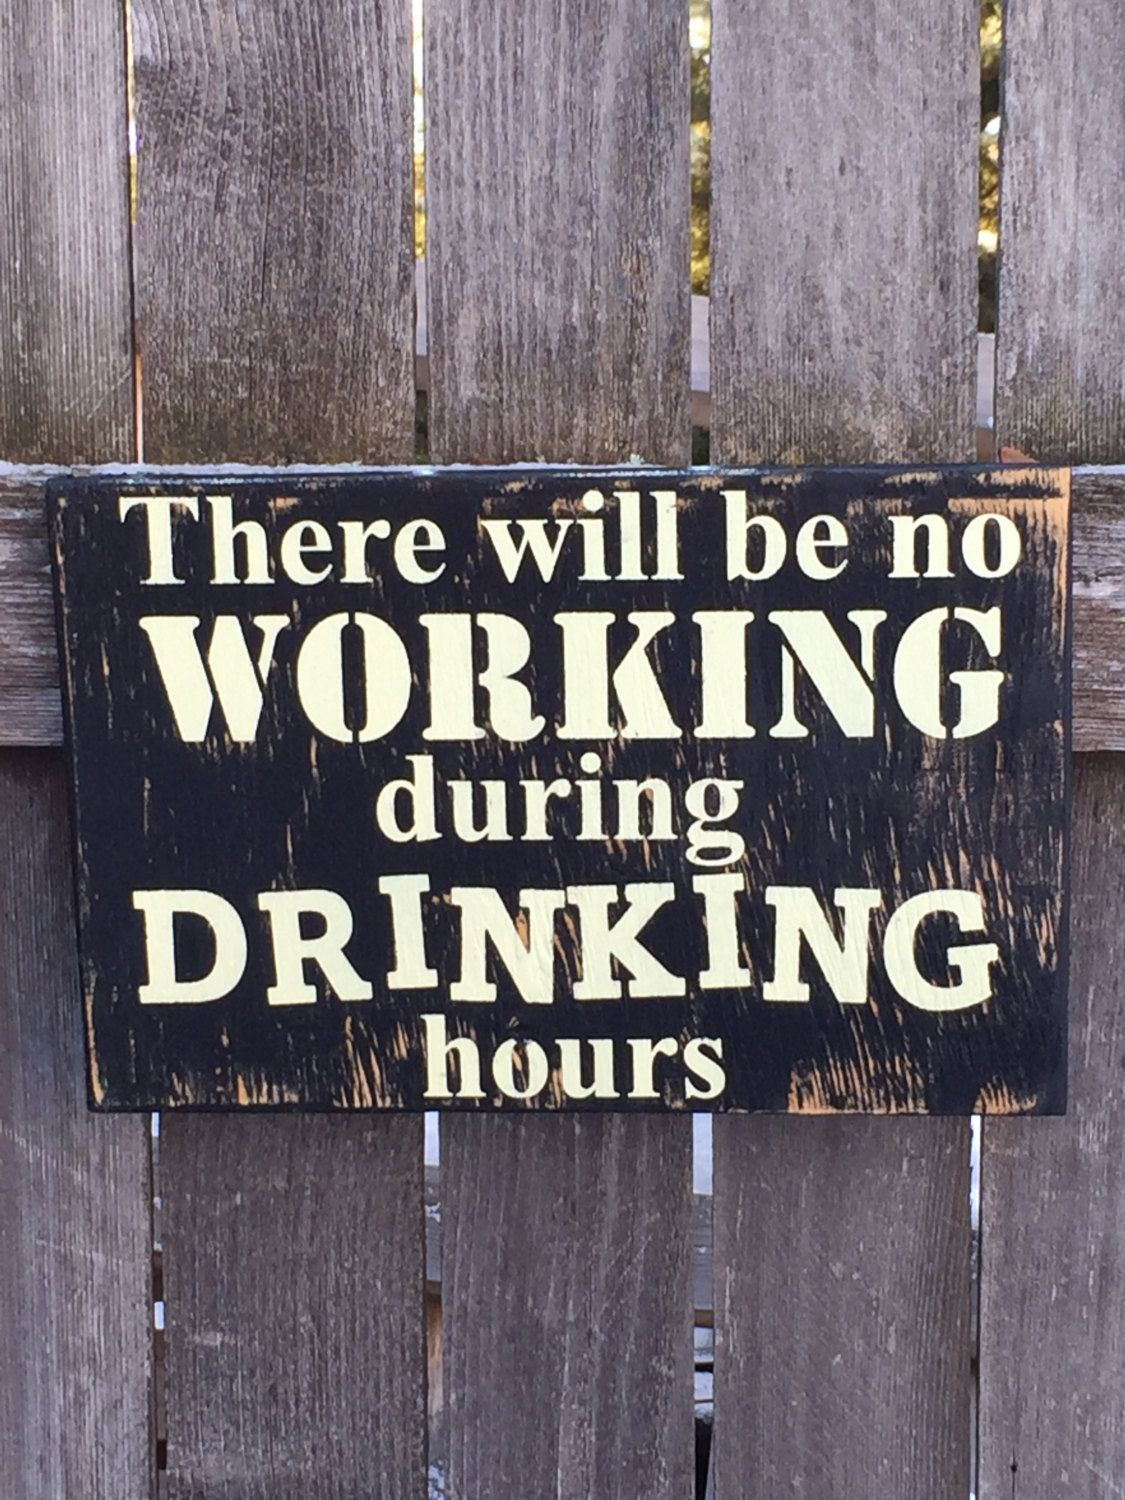 Man Cave Hours : Bar signs alcohol sign man cave there will be no